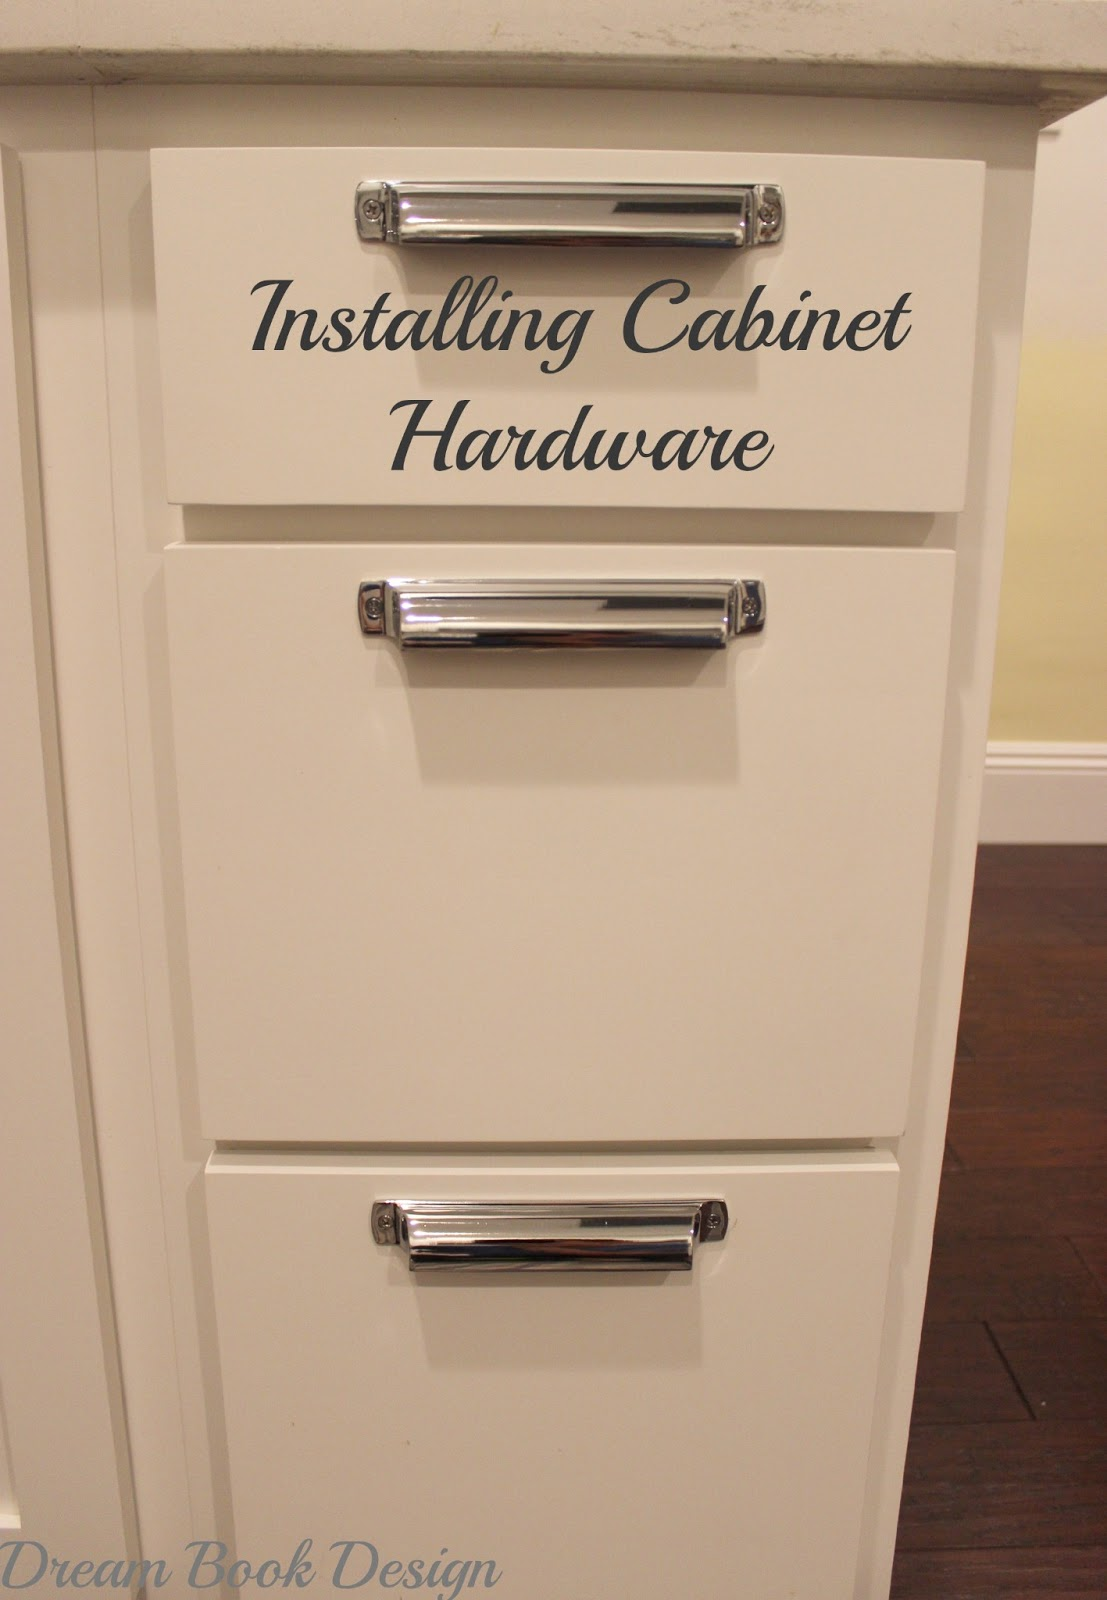 how to install kitchen cabinet hardware tutorial installing kitchen cabinets How To Install Kitchen Cabinet Hardware Tutorial